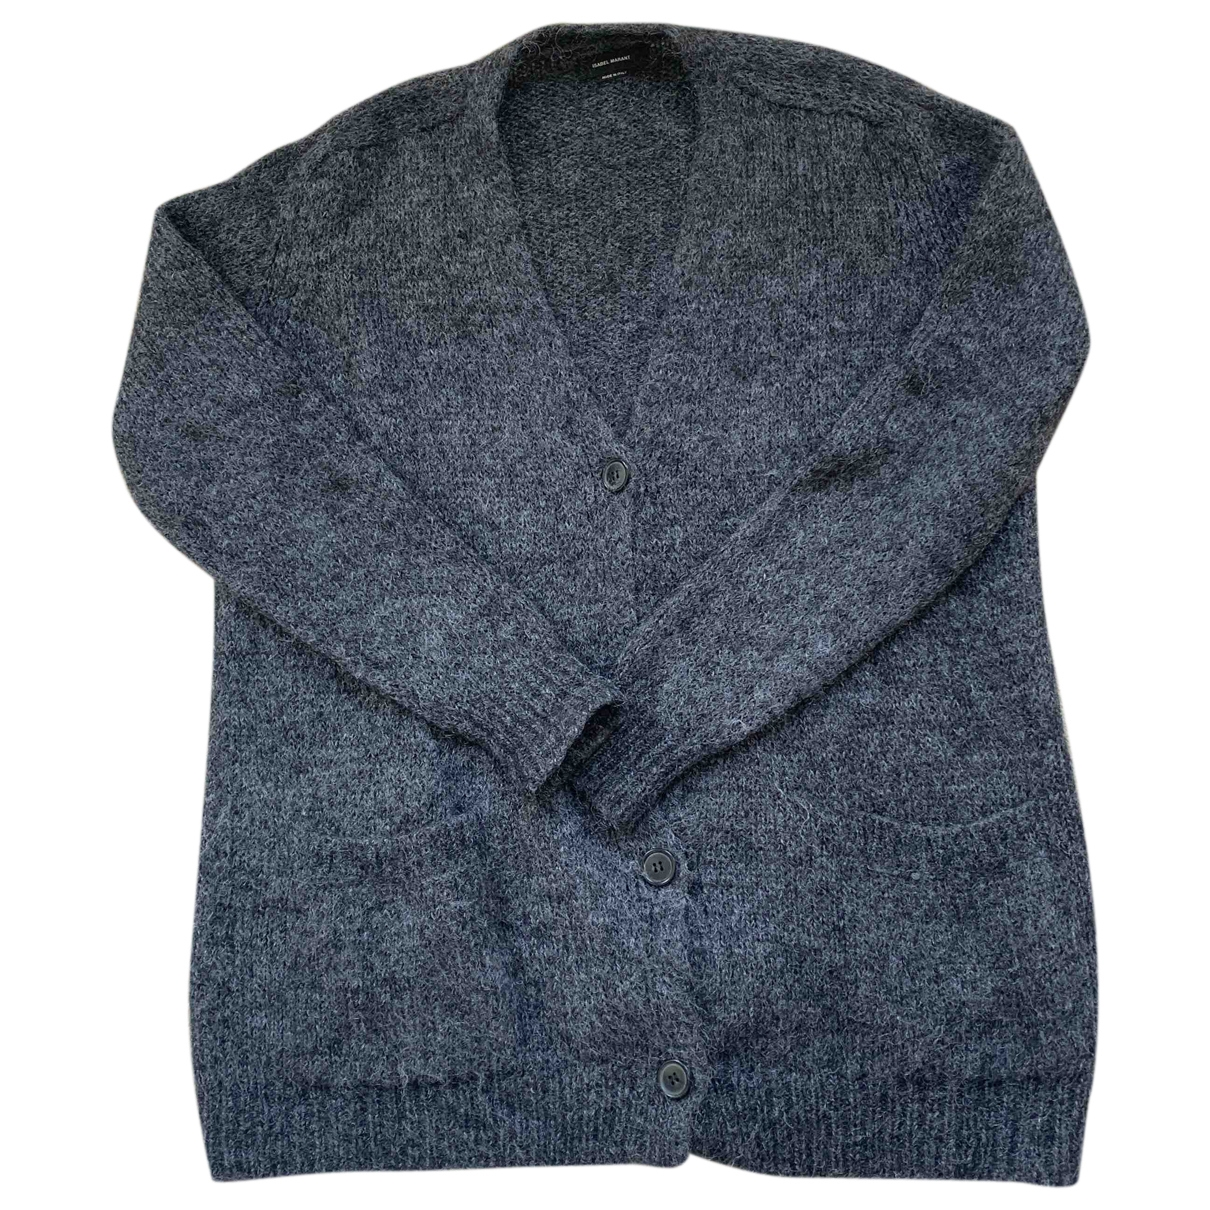 Isabel Marant \N Pullover in  Grau Wolle